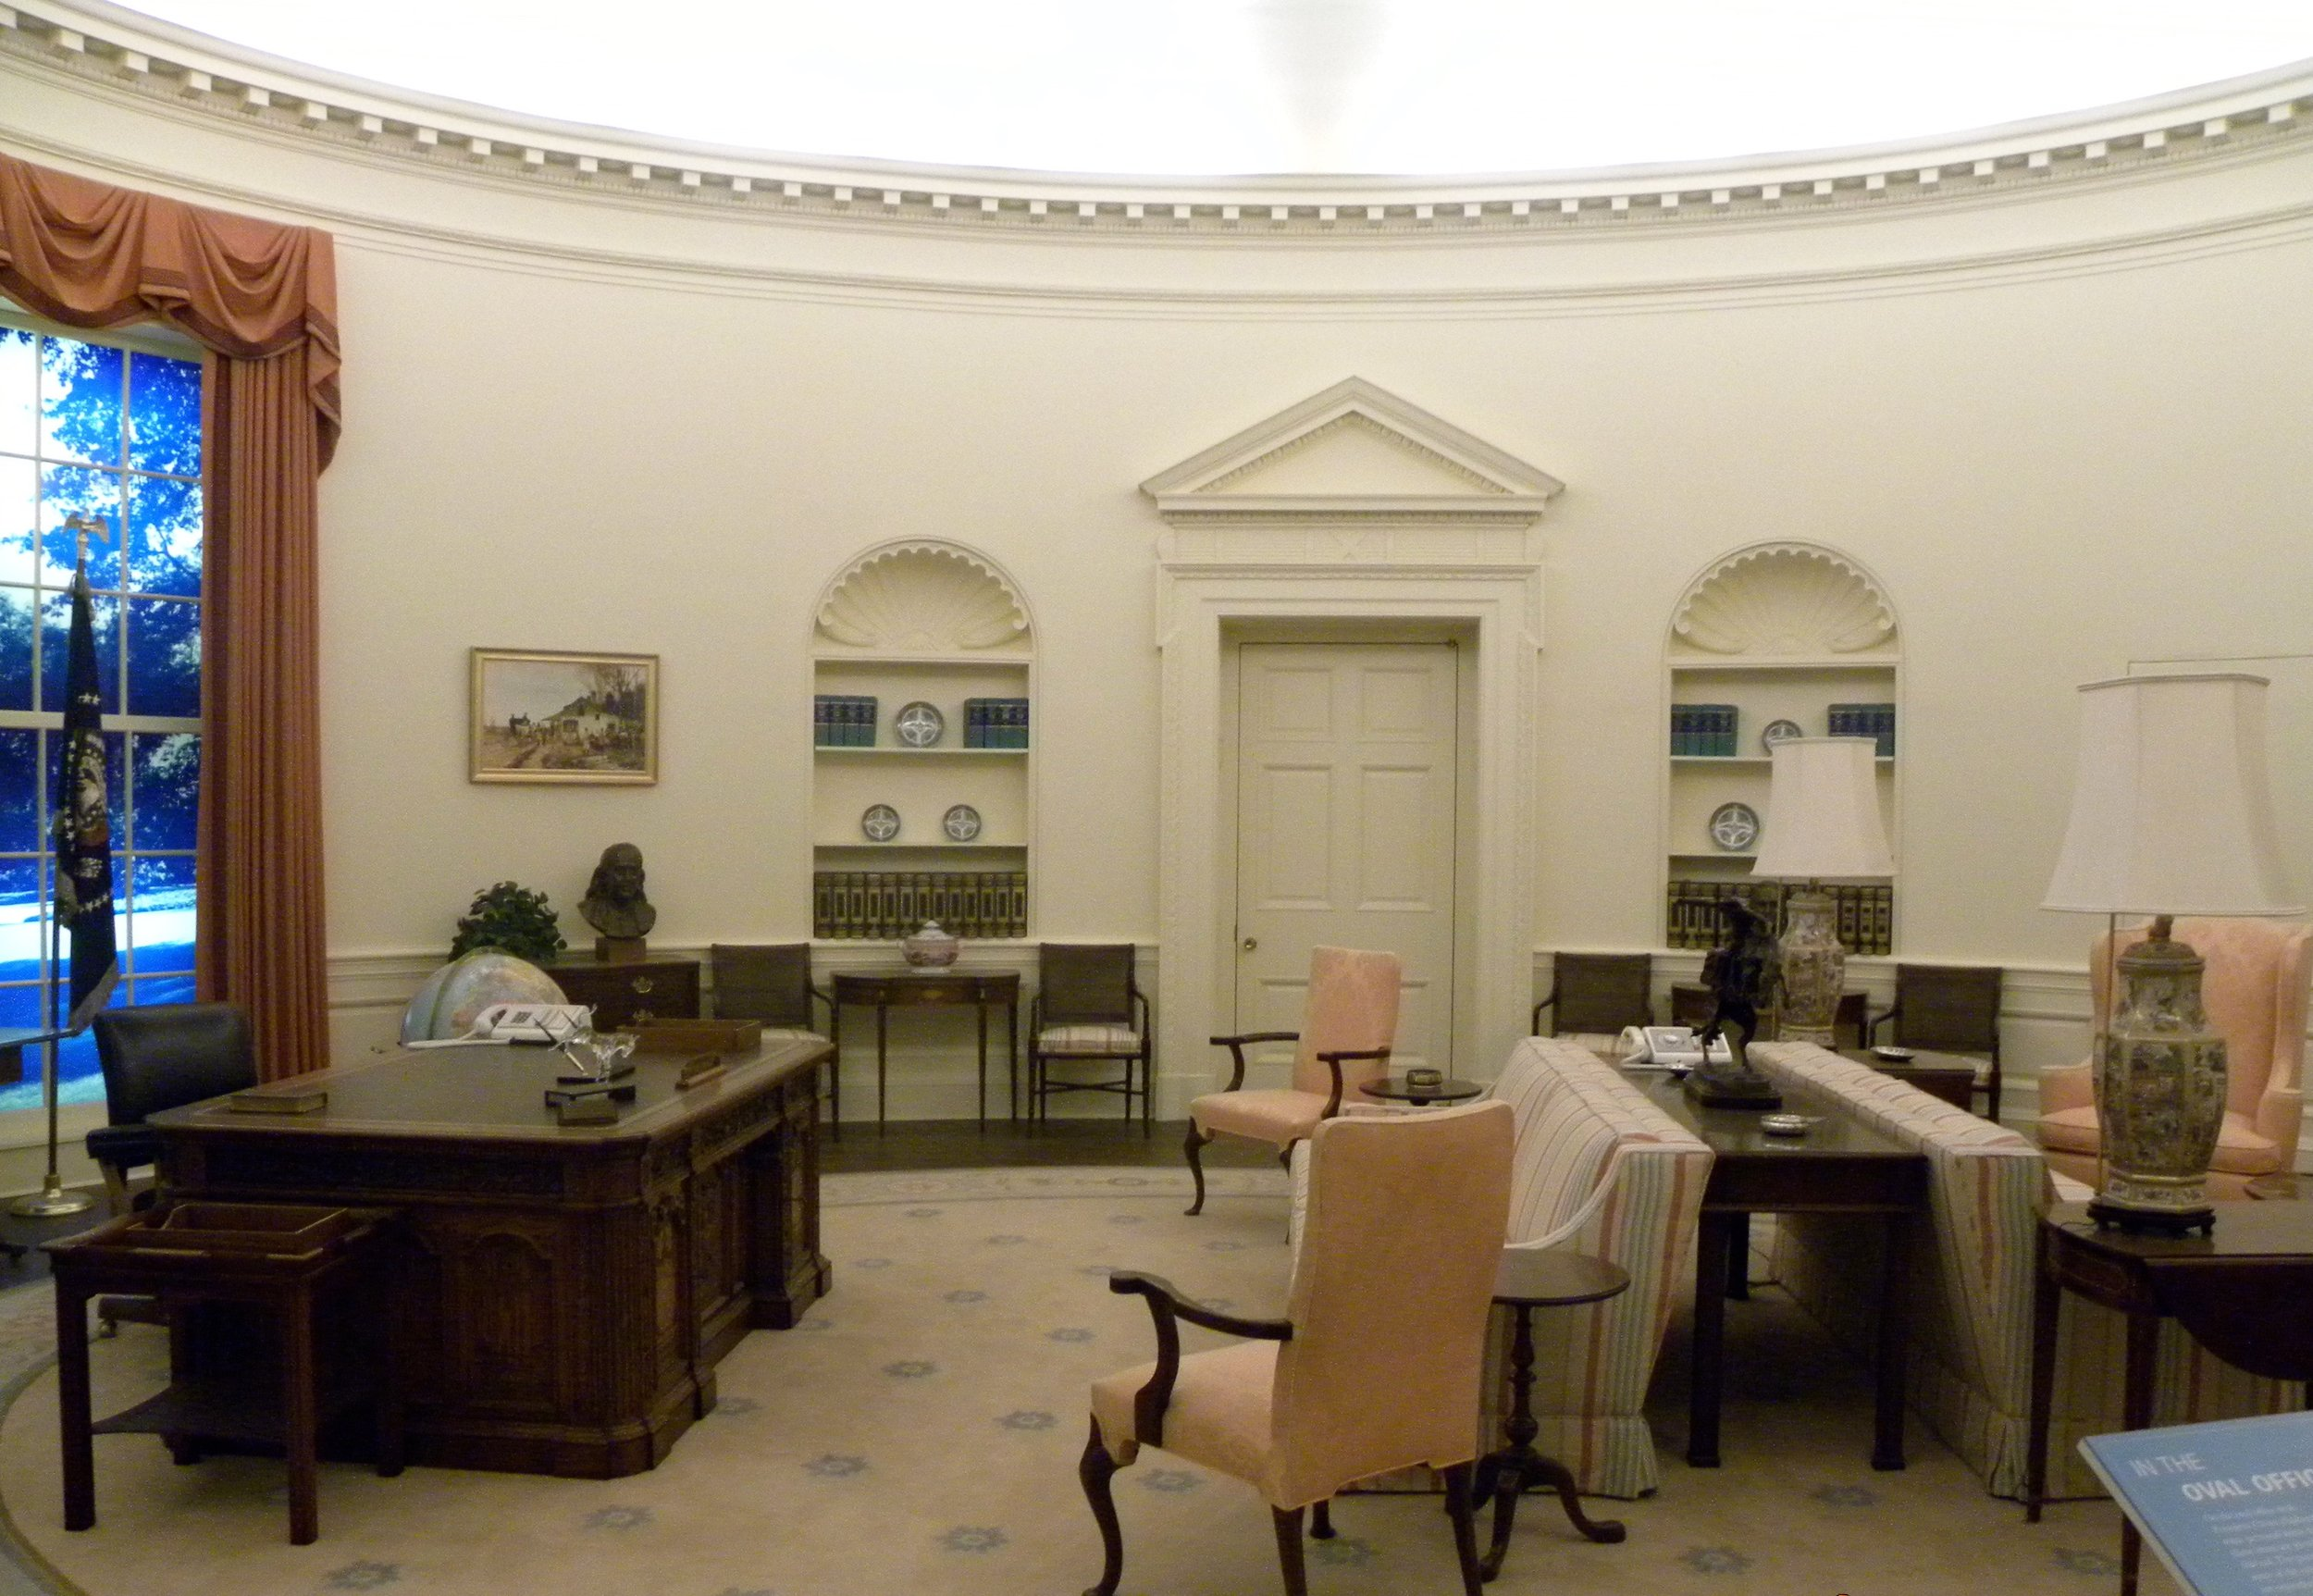 A replica of Jimmy Carter's Oval Office.